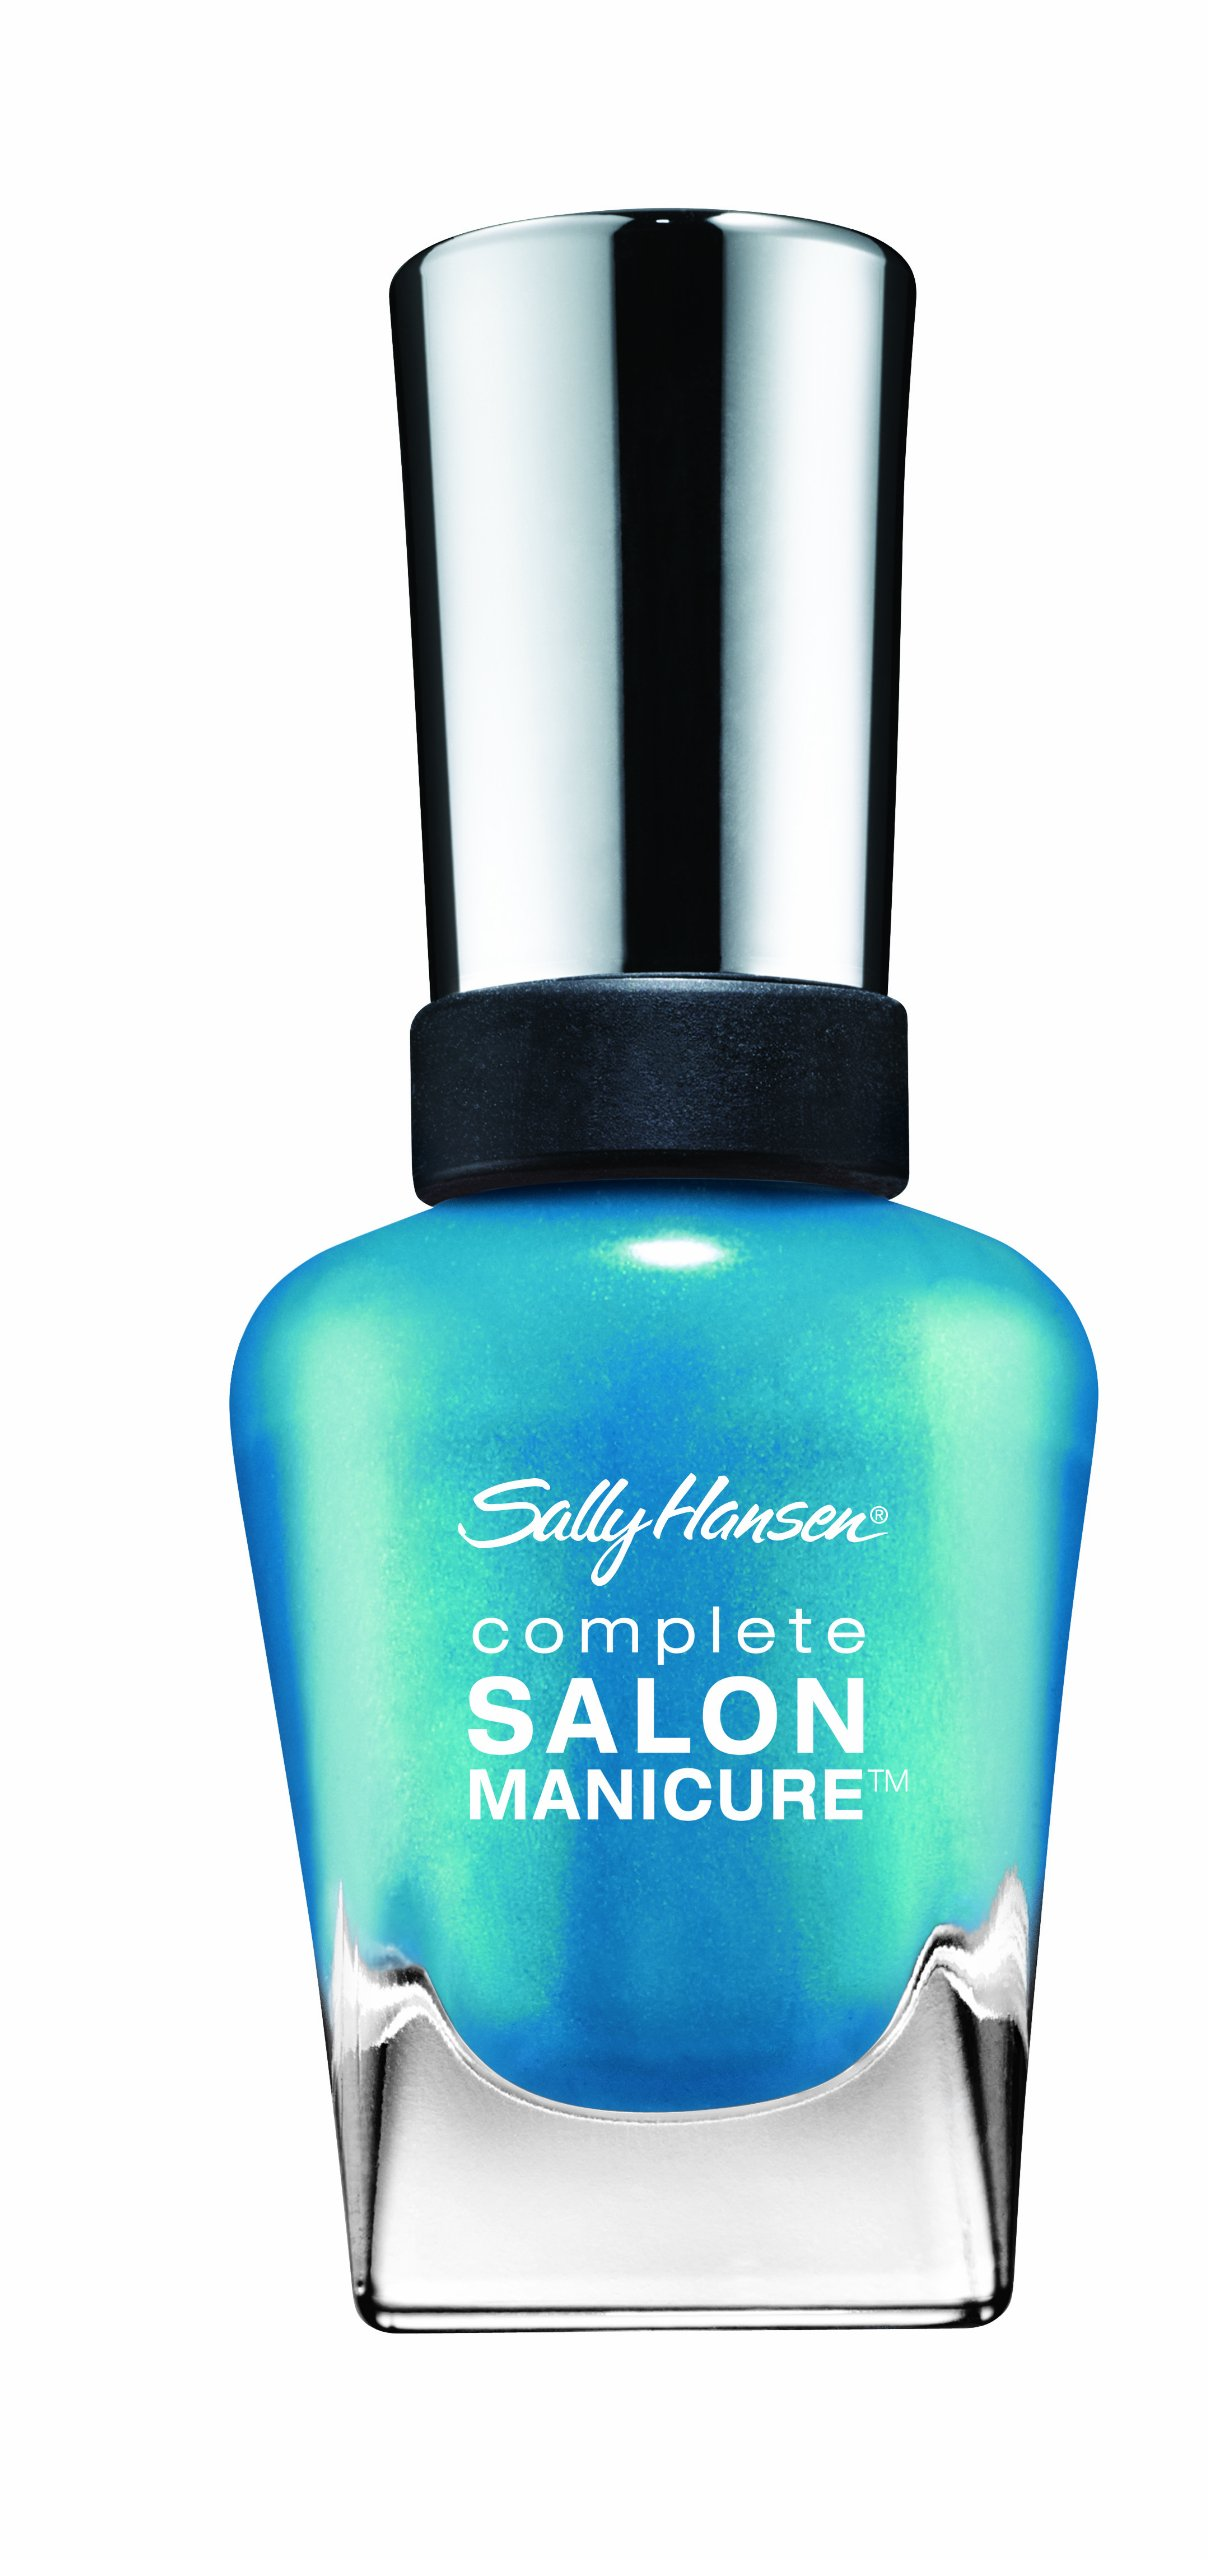 Sally Hansen - Sally Hansen Complete Salon Manicure, Calypso Blue, 0.5 Ounce